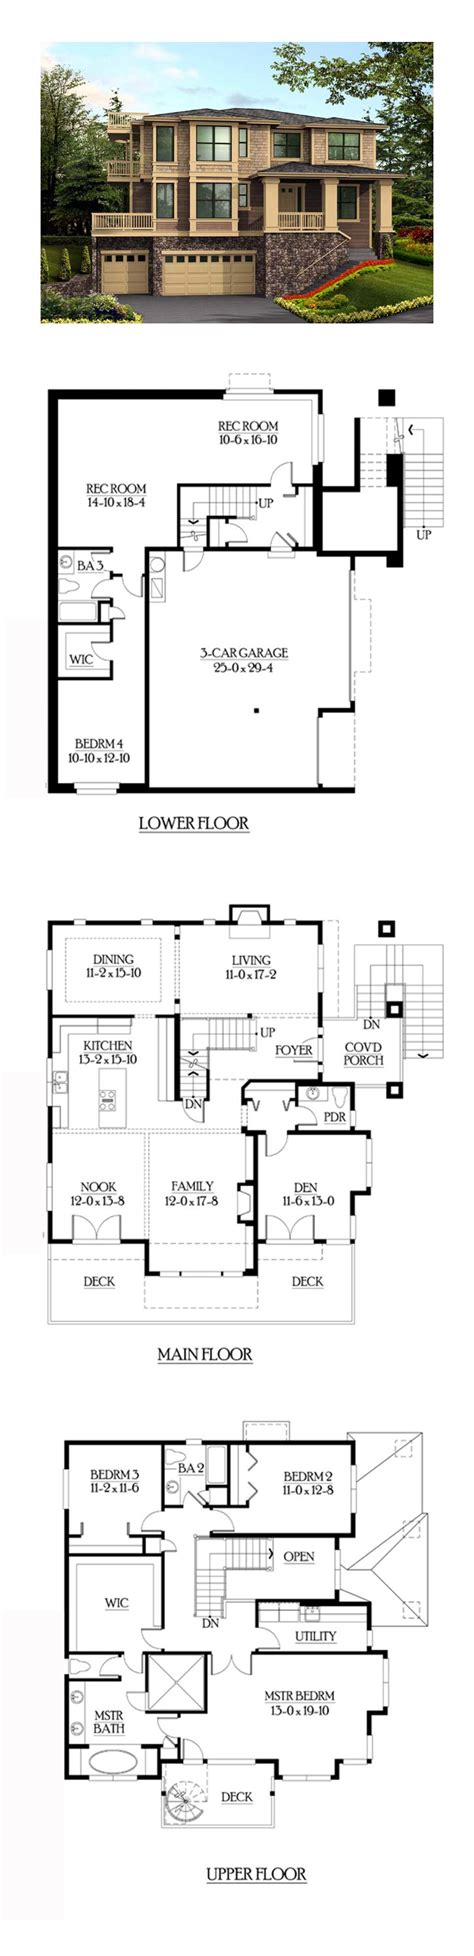 house plans with basement best 25 basement house plans ideas on pinterest house floor plans house plans and